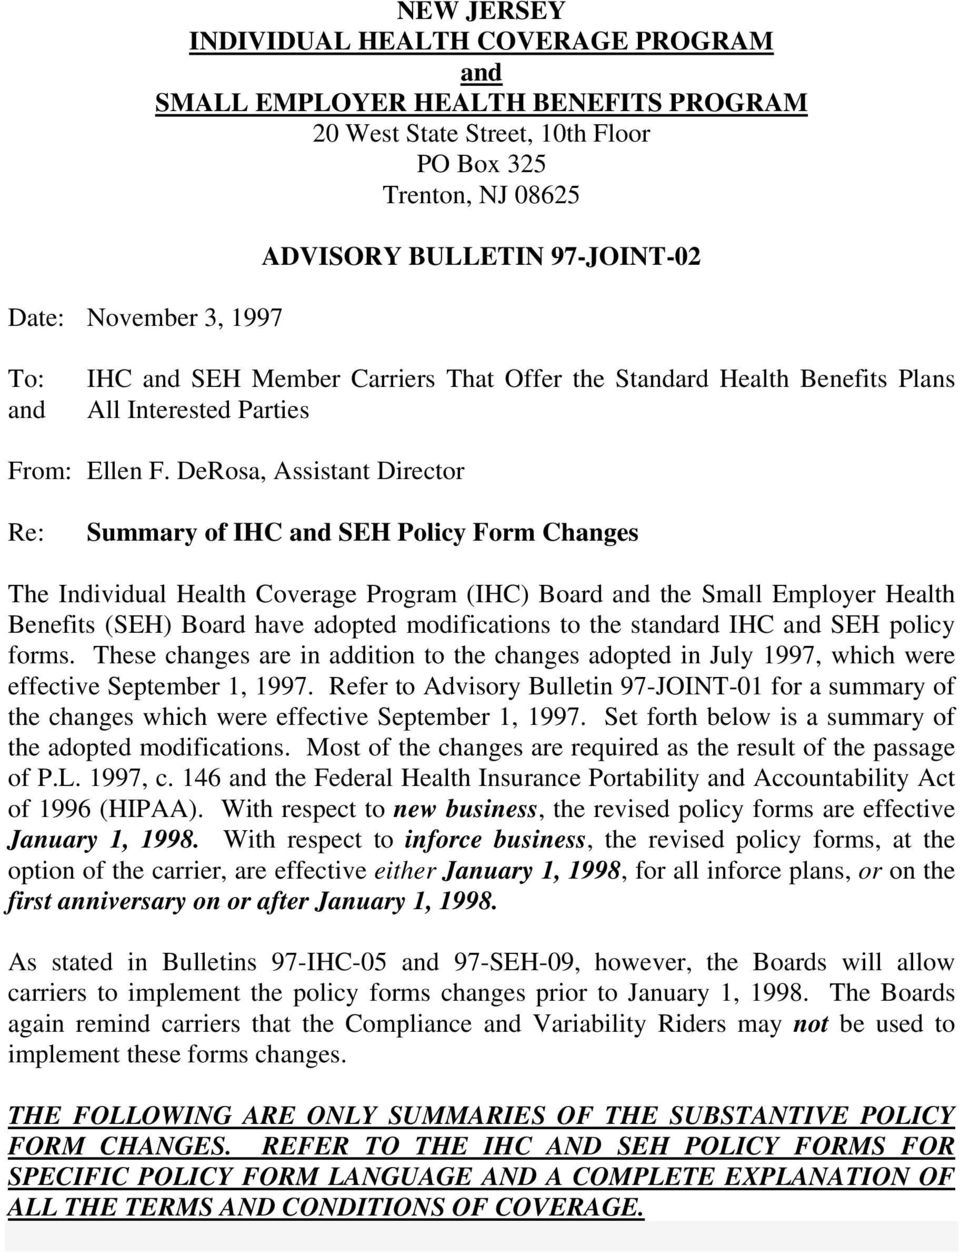 DeRosa, Assistant Director Re: Summary of IHC and SEH Policy Form Changes The Individual Health Coverage Program (IHC) Board and the Small Employer Health Benefits (SEH) Board have adopted